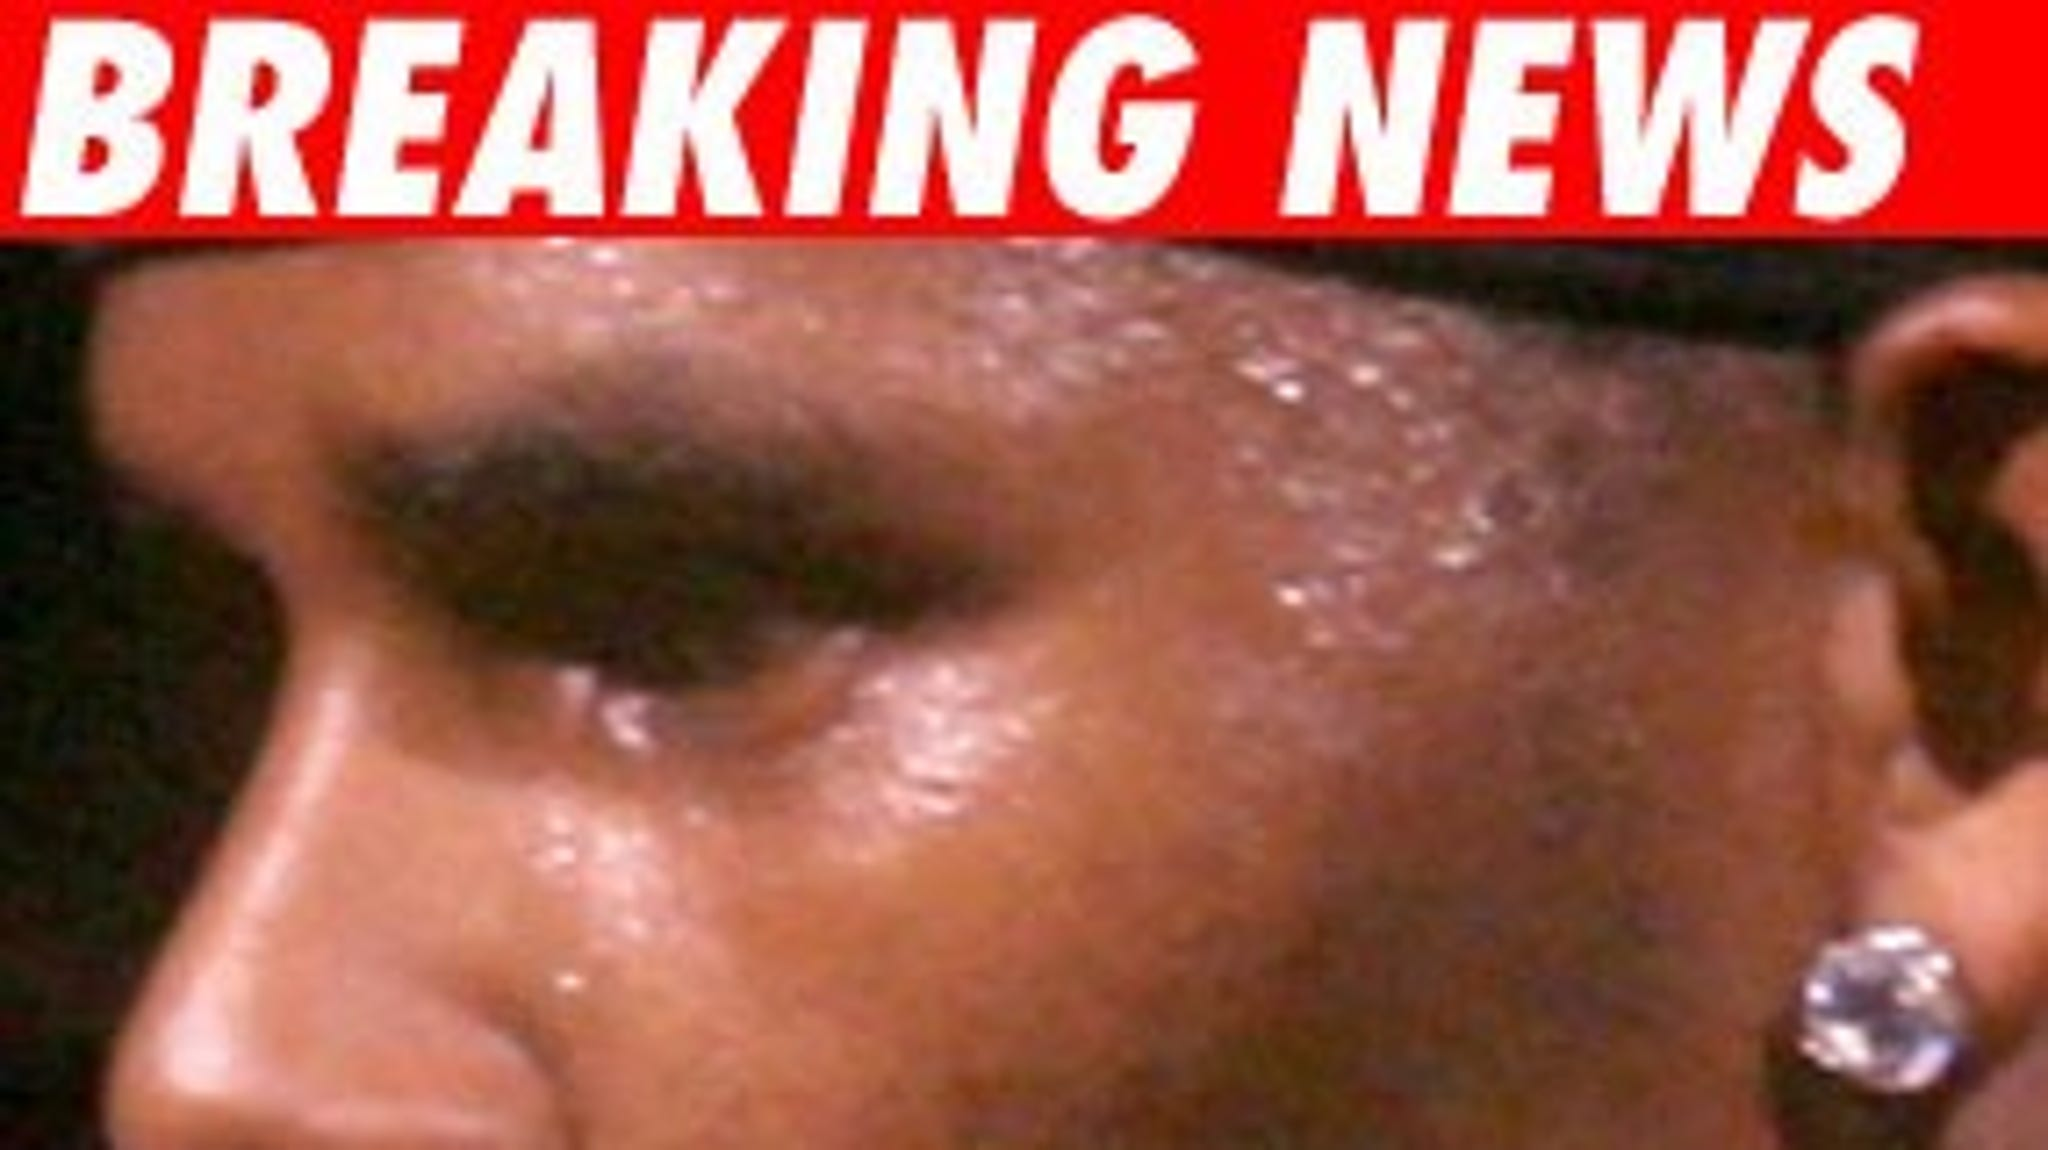 R. Kelly Not Guilty -- Urine The Clear